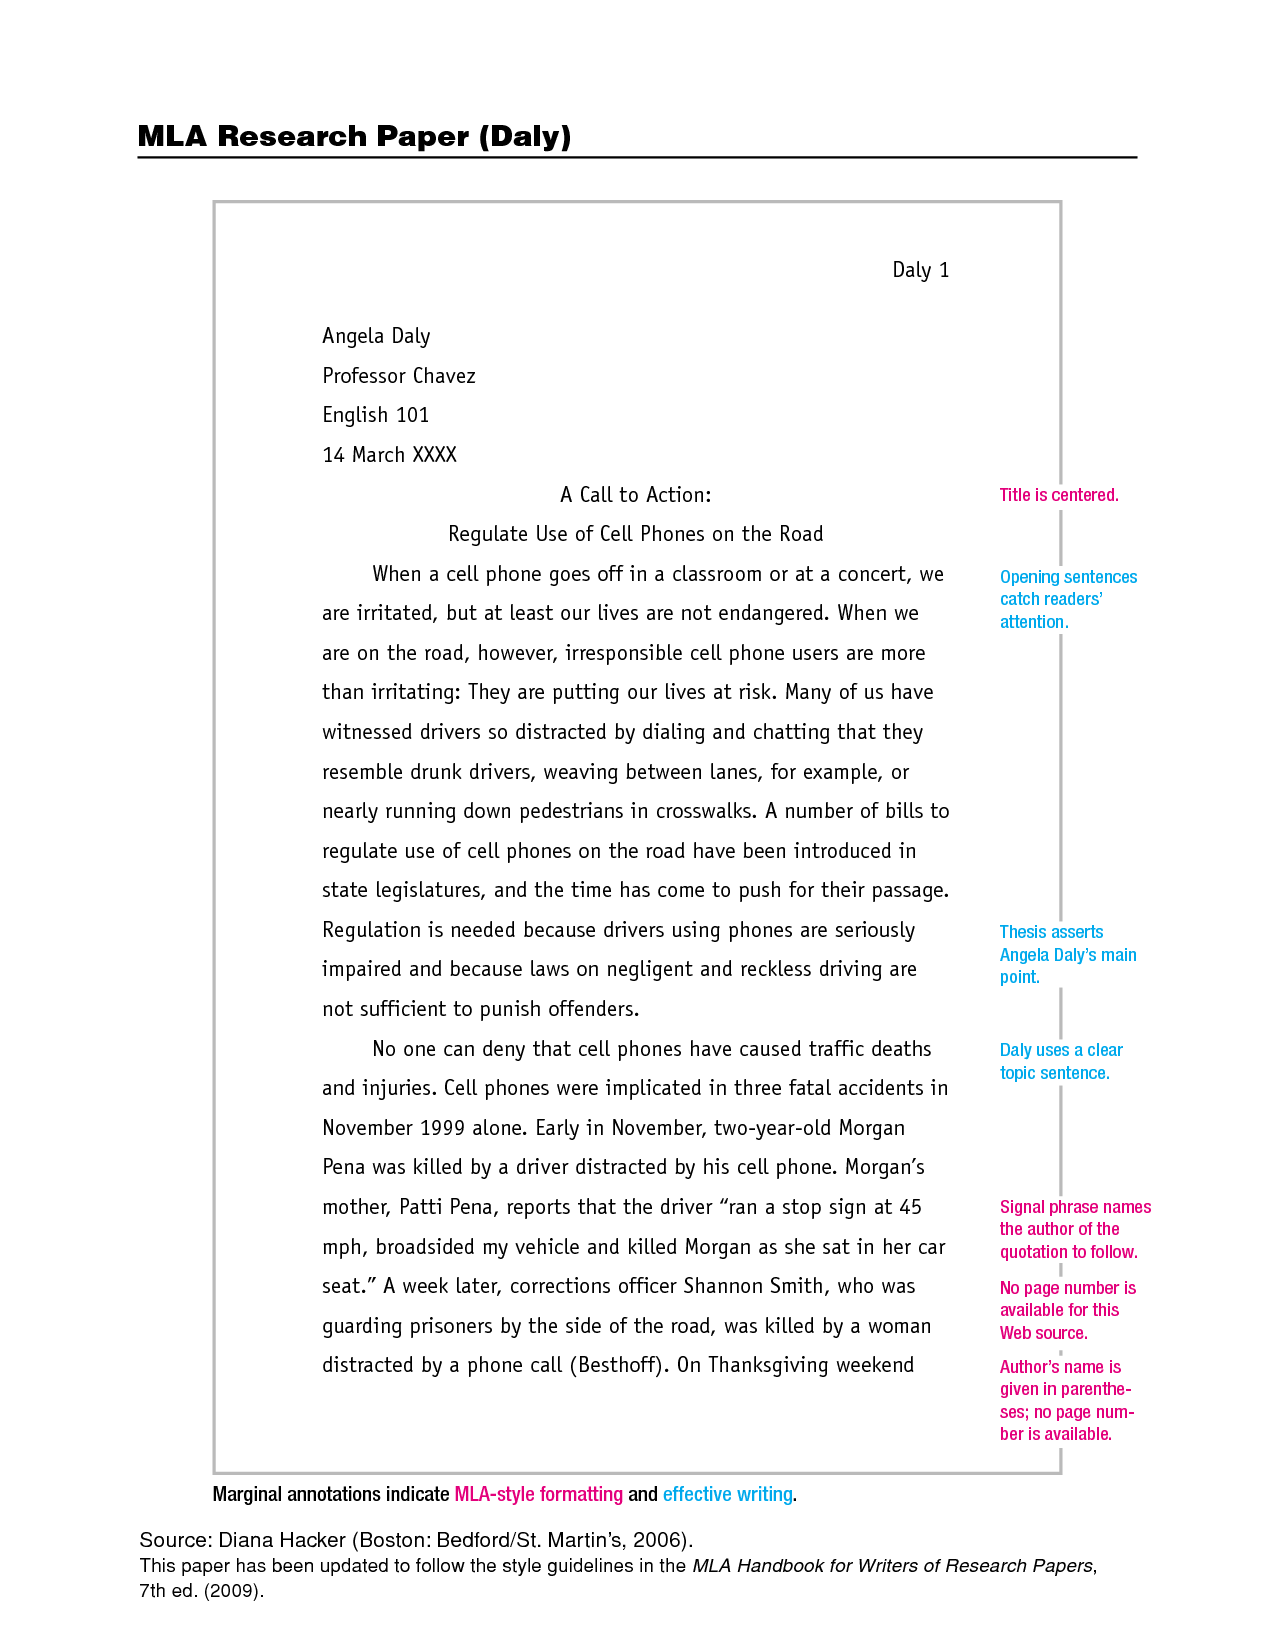 009 Research Paper Format Of Astounding A Example Mla Works Cited Sample Outline In Apa Style Full